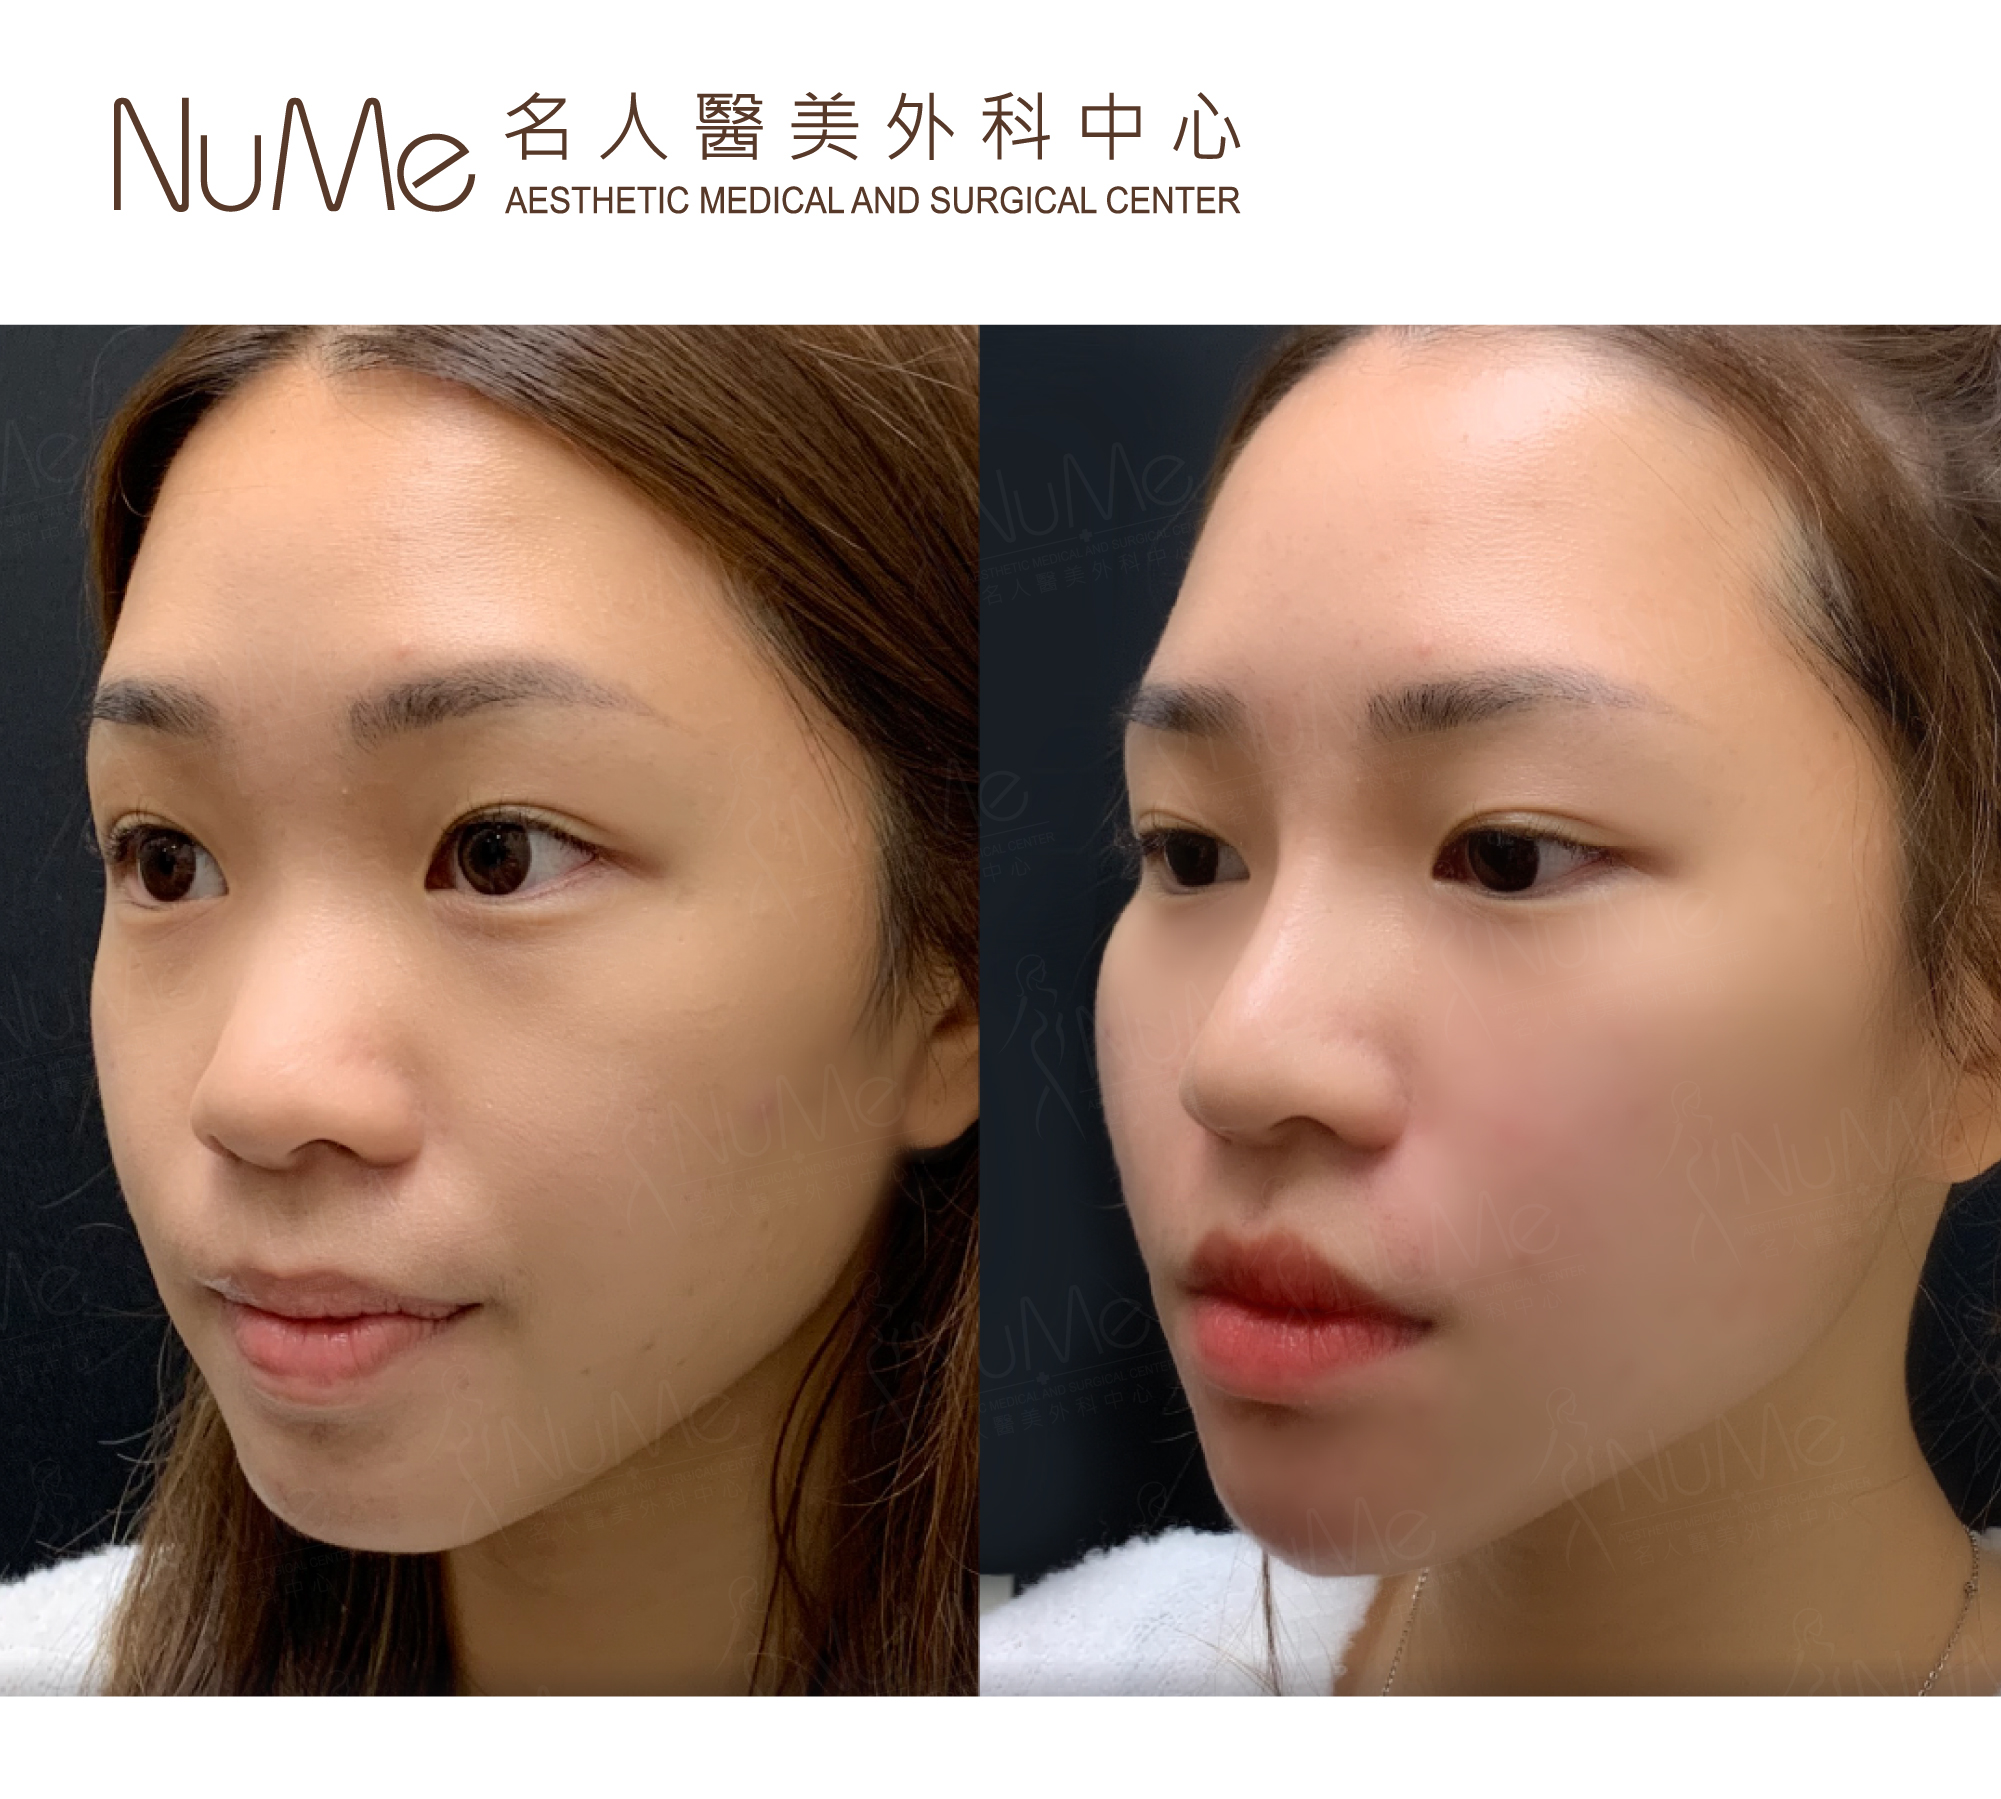 NuMe-Facebook-Before-After-Photos-Comments-Natalie-01.jpg